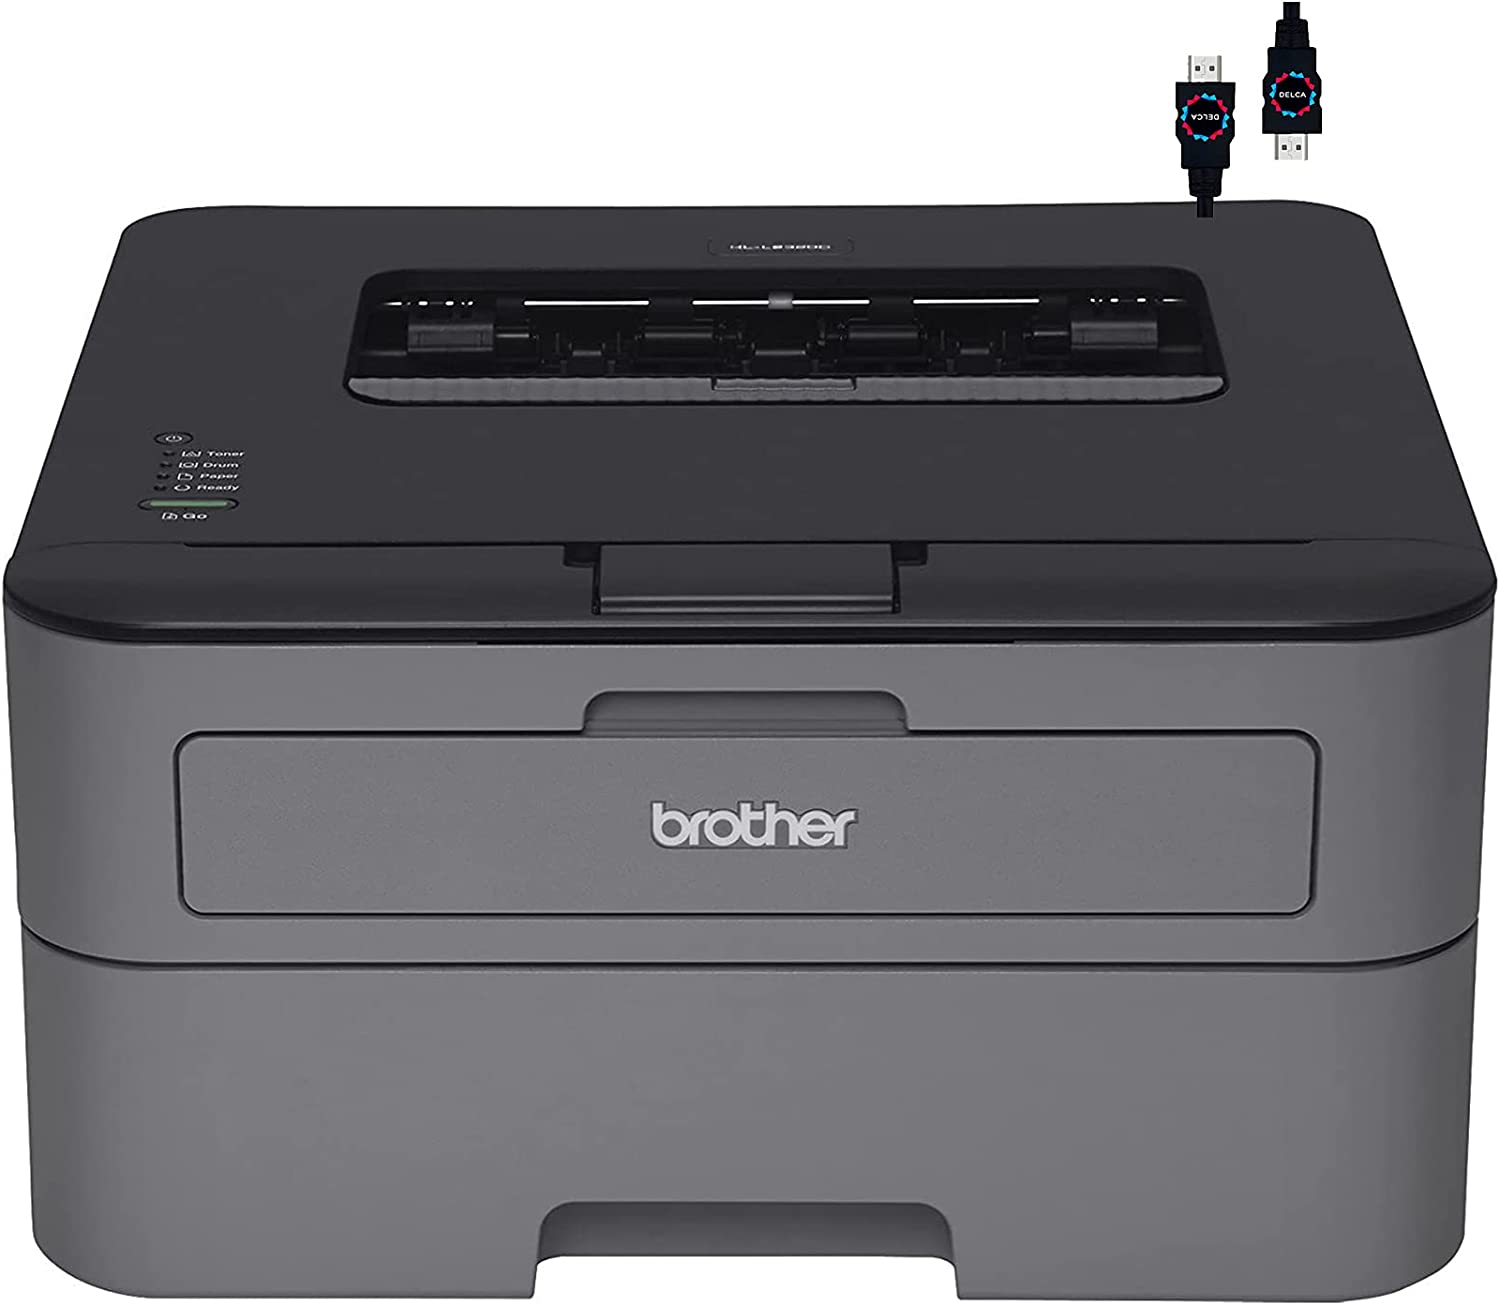 Brother Premium HL L23 Series Compact Monochrome Laser Printer I Auto 2-Sided Printing I Up to 26 Pages/min I 250-sheet/tray I 2400 x 600 dpi I 27ppm + HDMI Cable